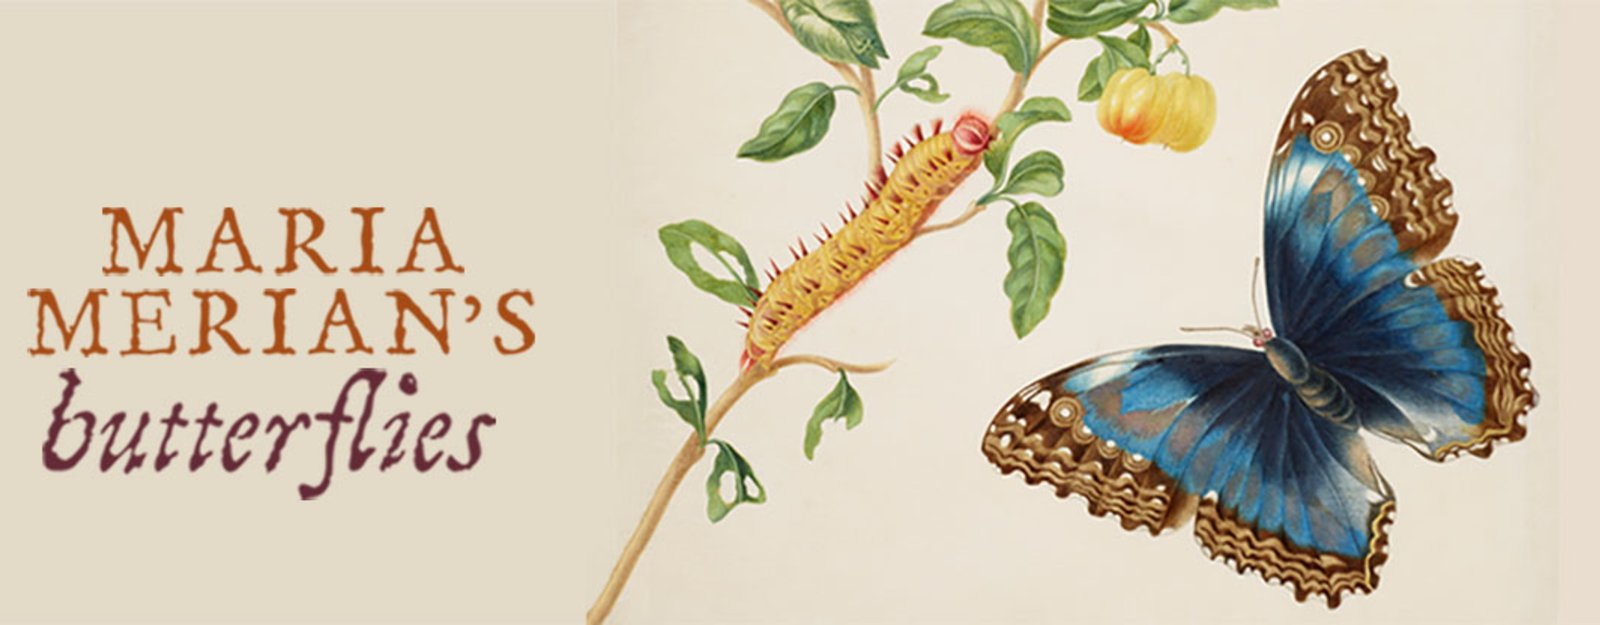 Banner for Maria Merian exhibition